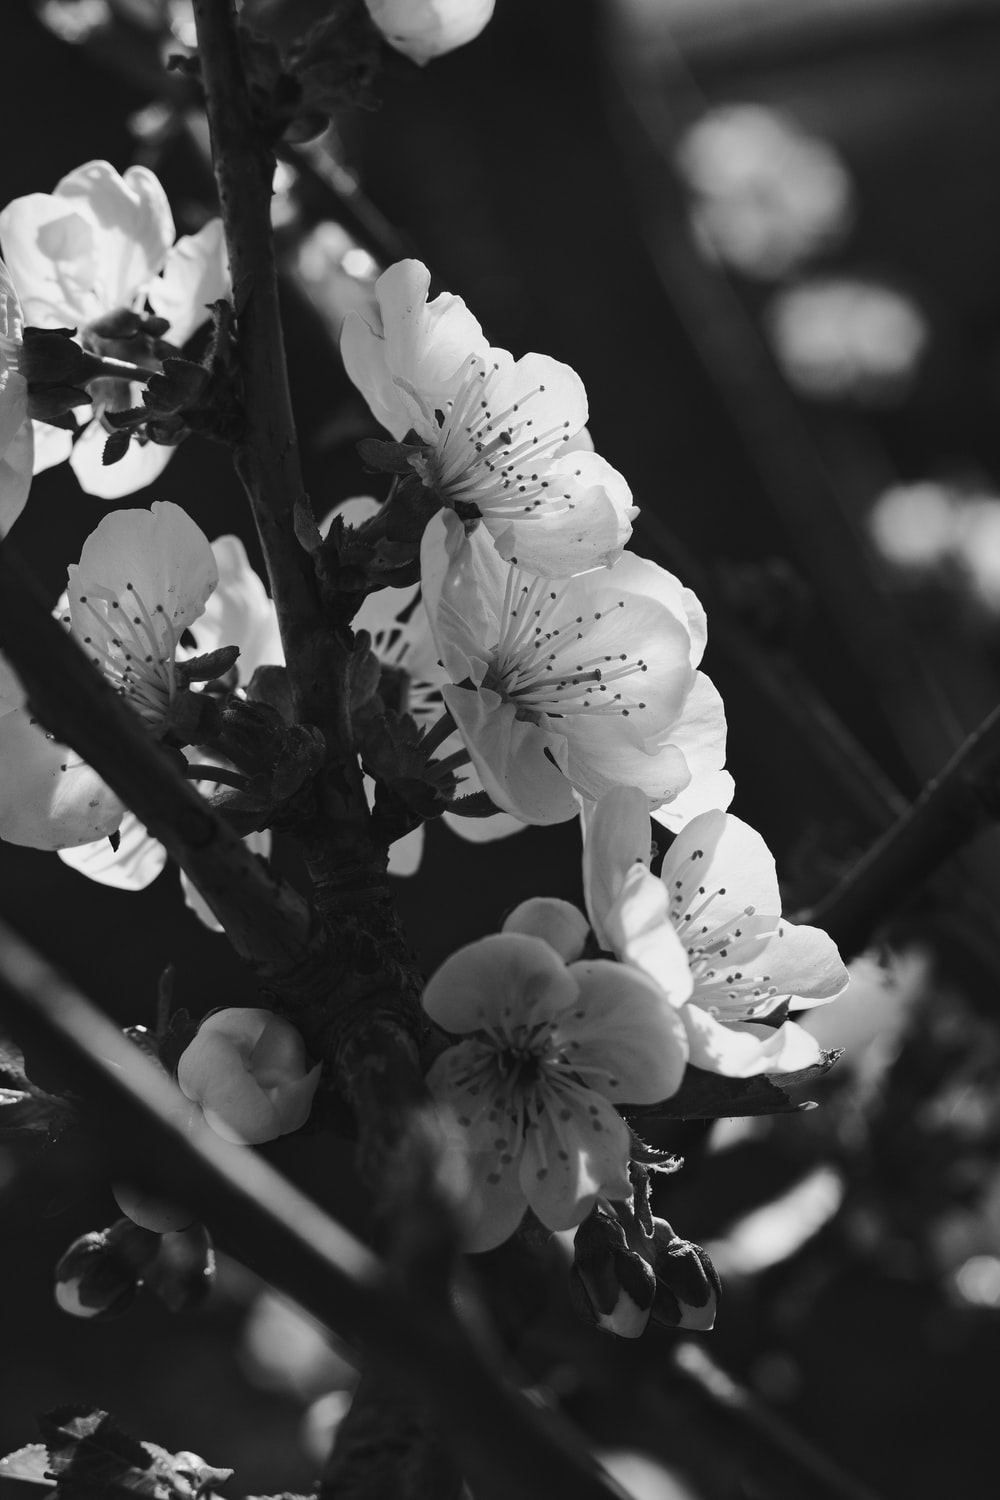 grayscale photo of flowers in bloom